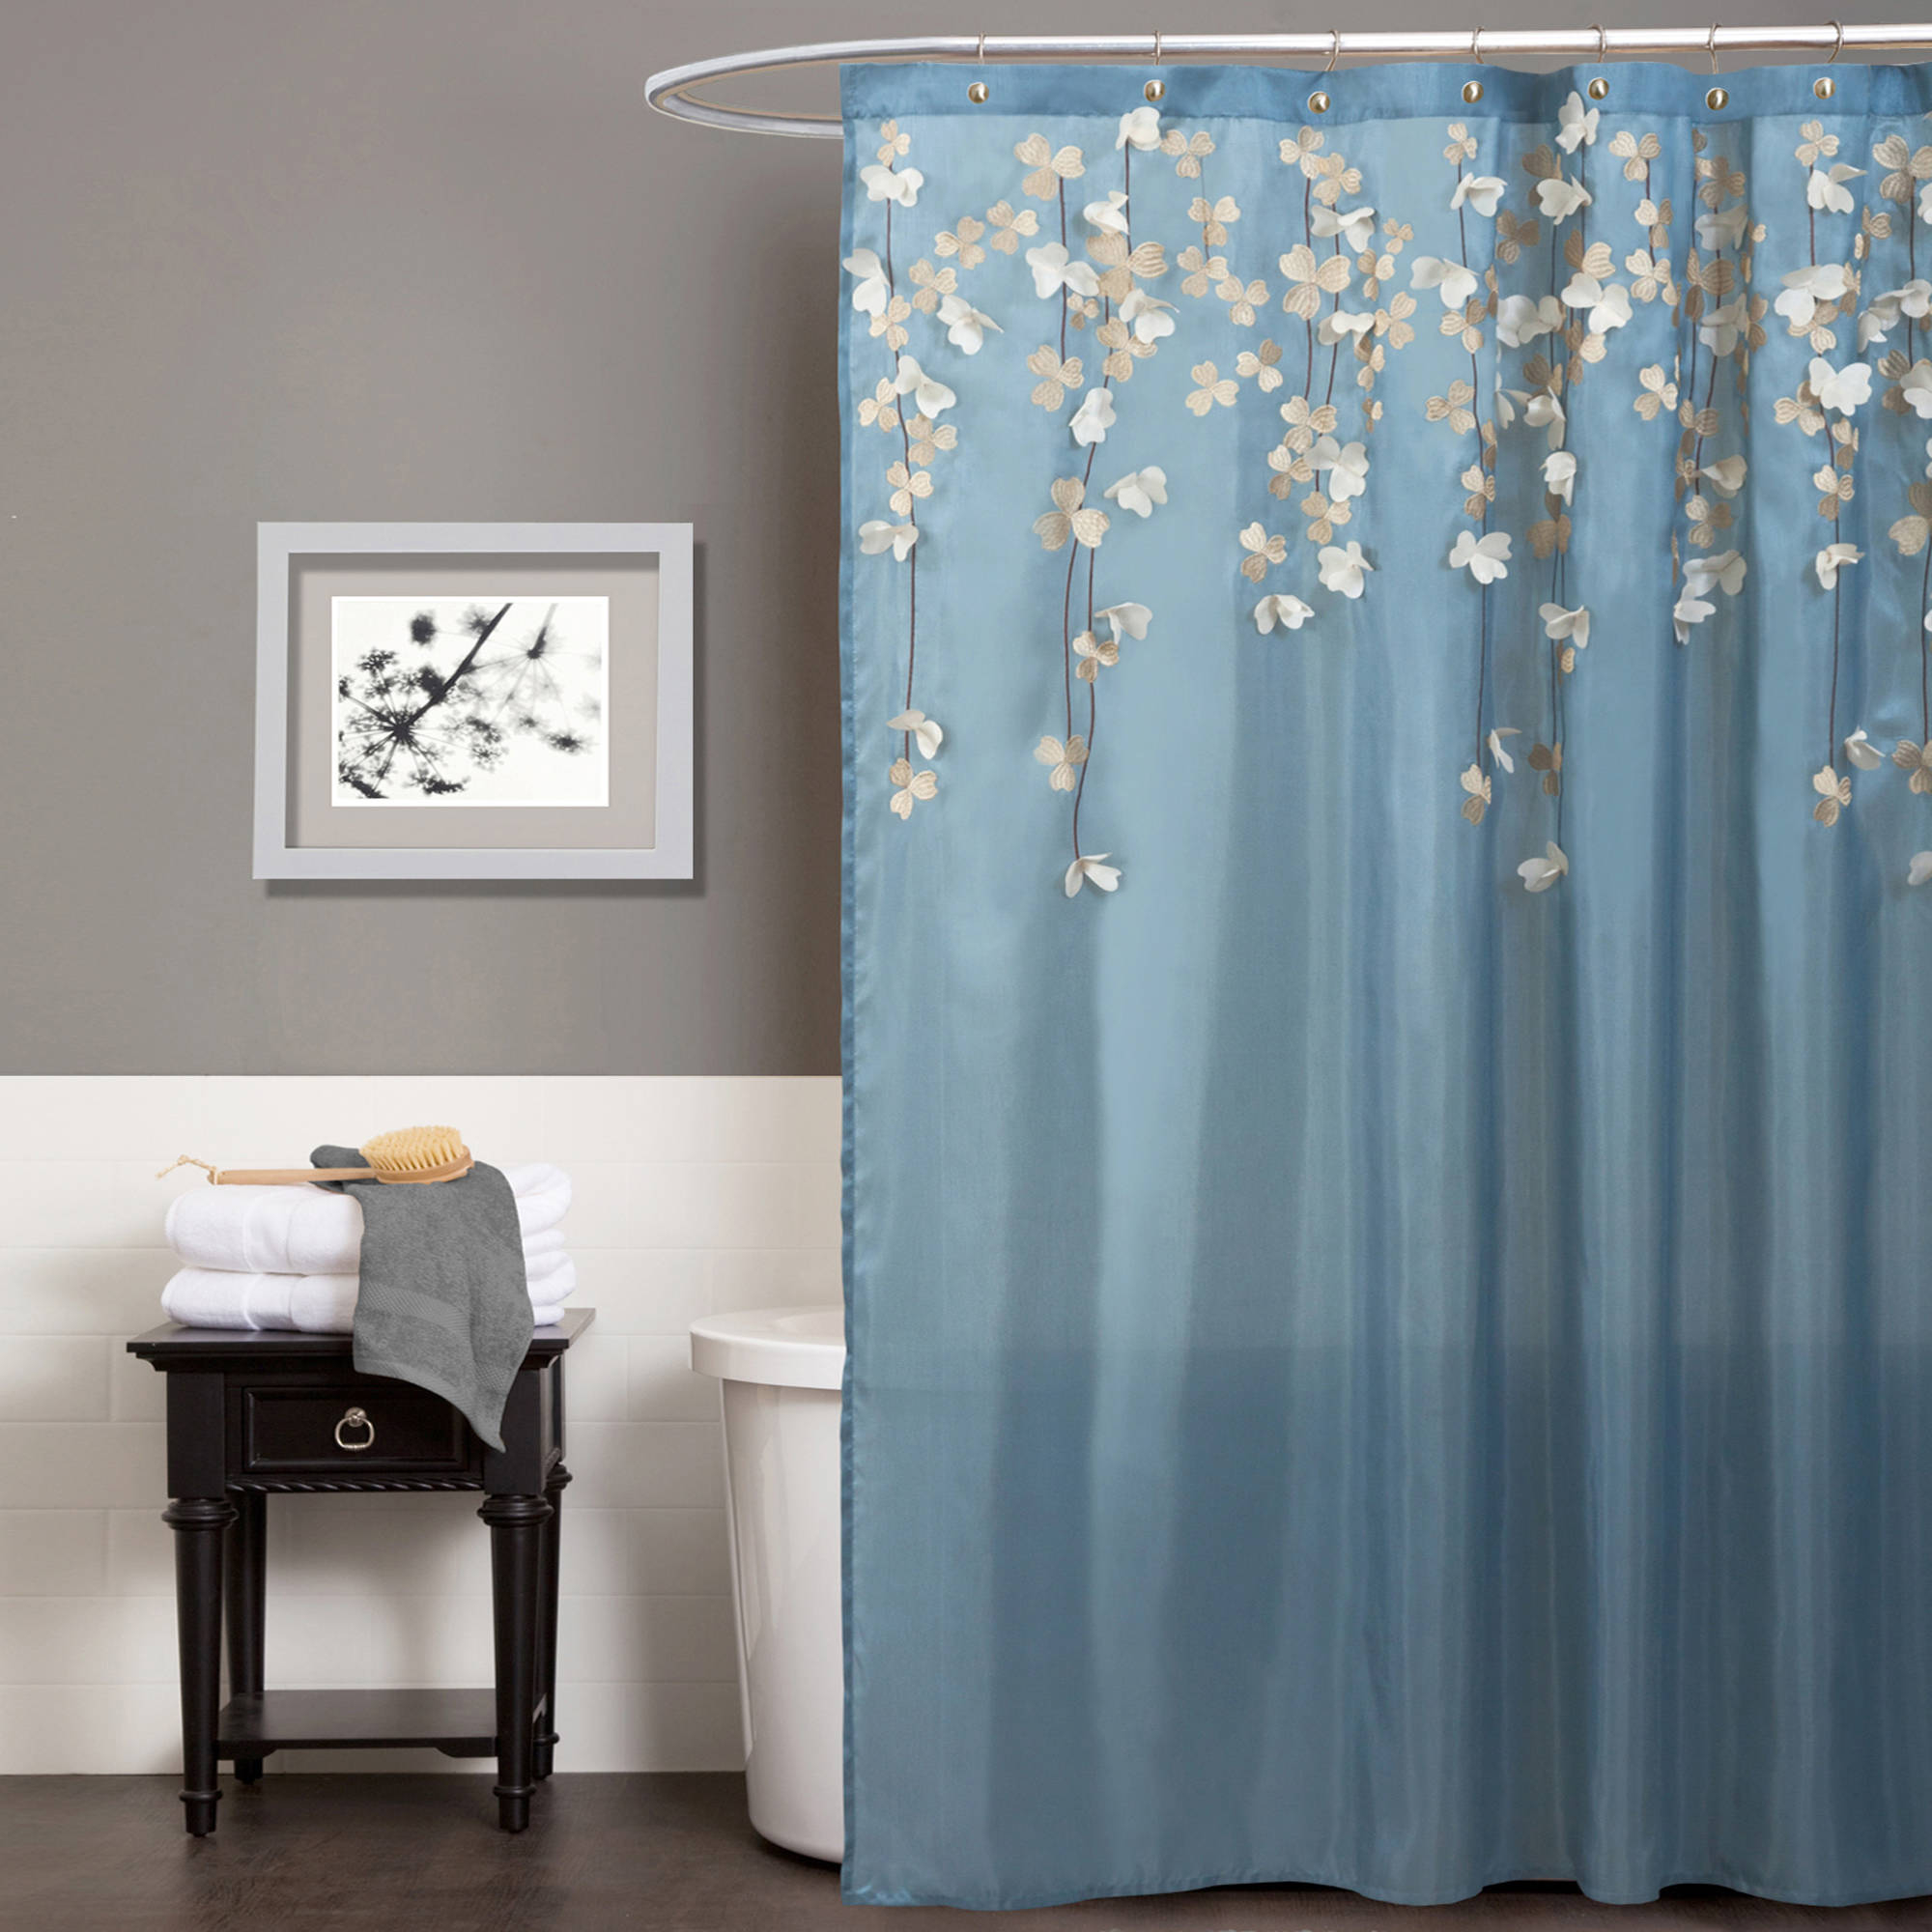 Shower Curtains Walmart for dimensions 2000 X 2000